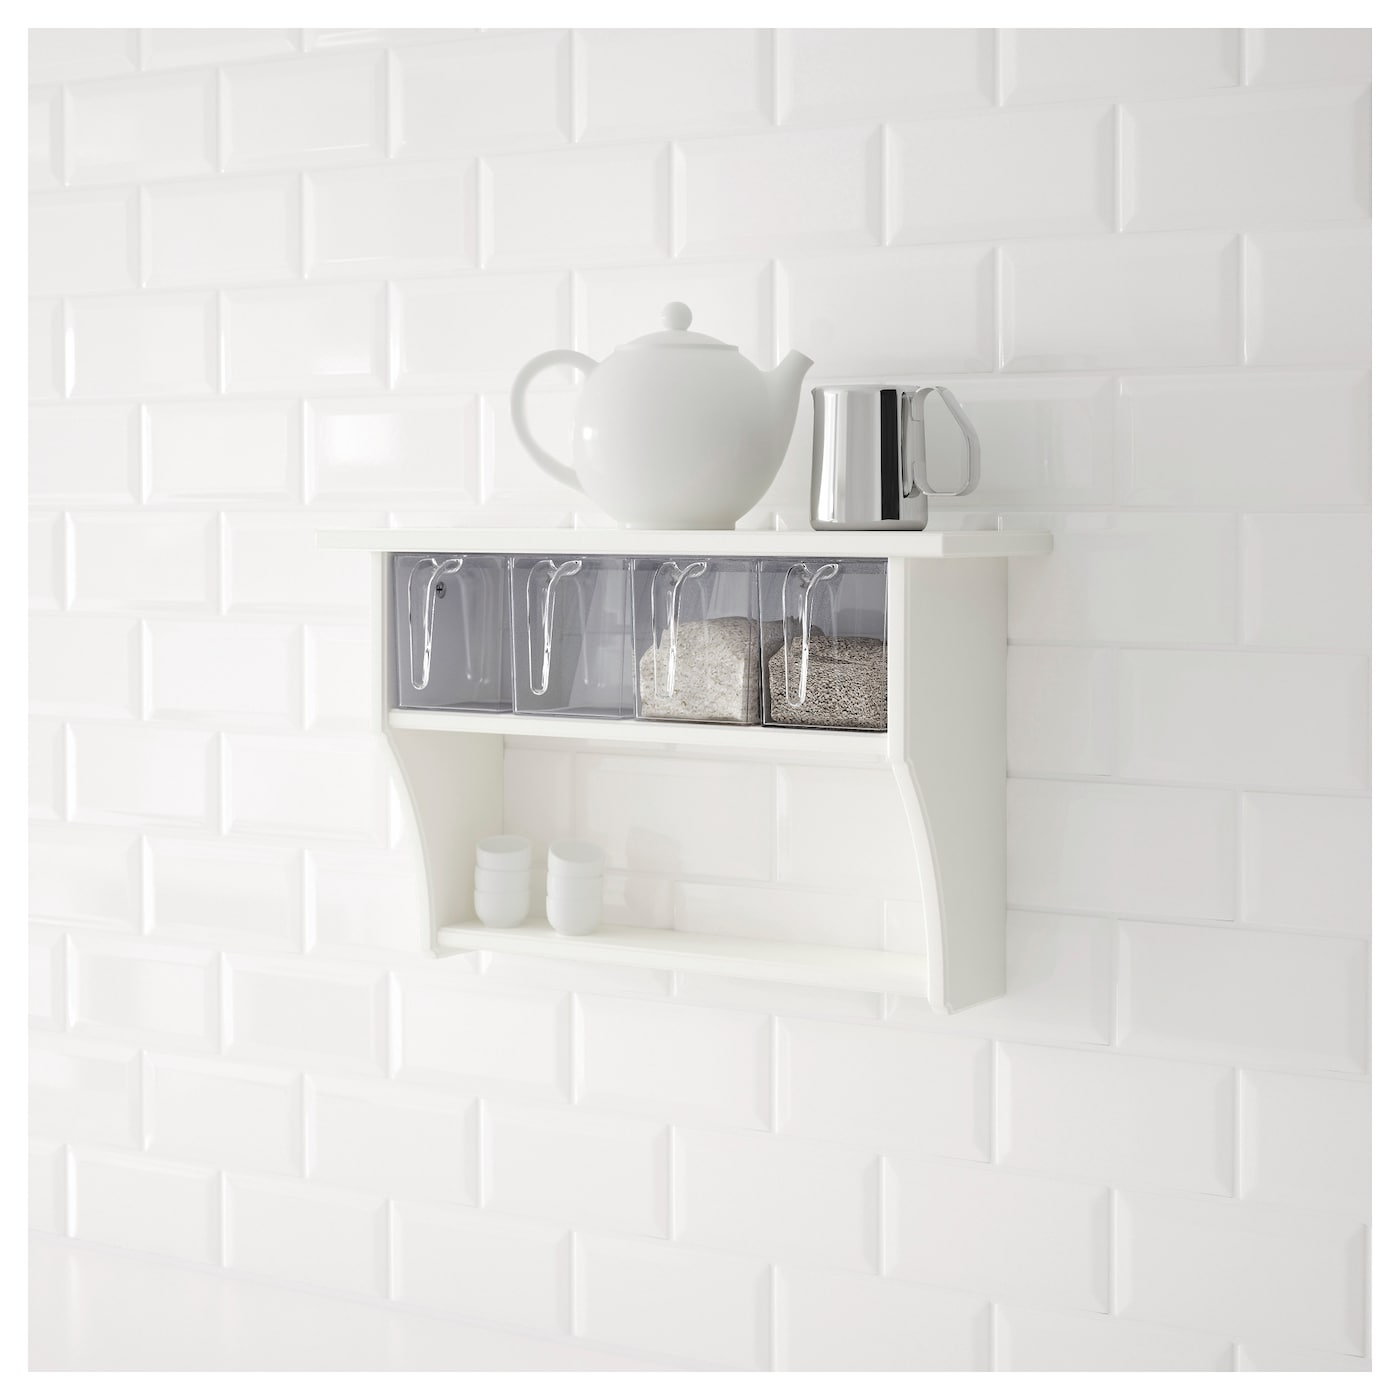 STENSTORP Wall shelf with drawers White 60x37 cm IKEA